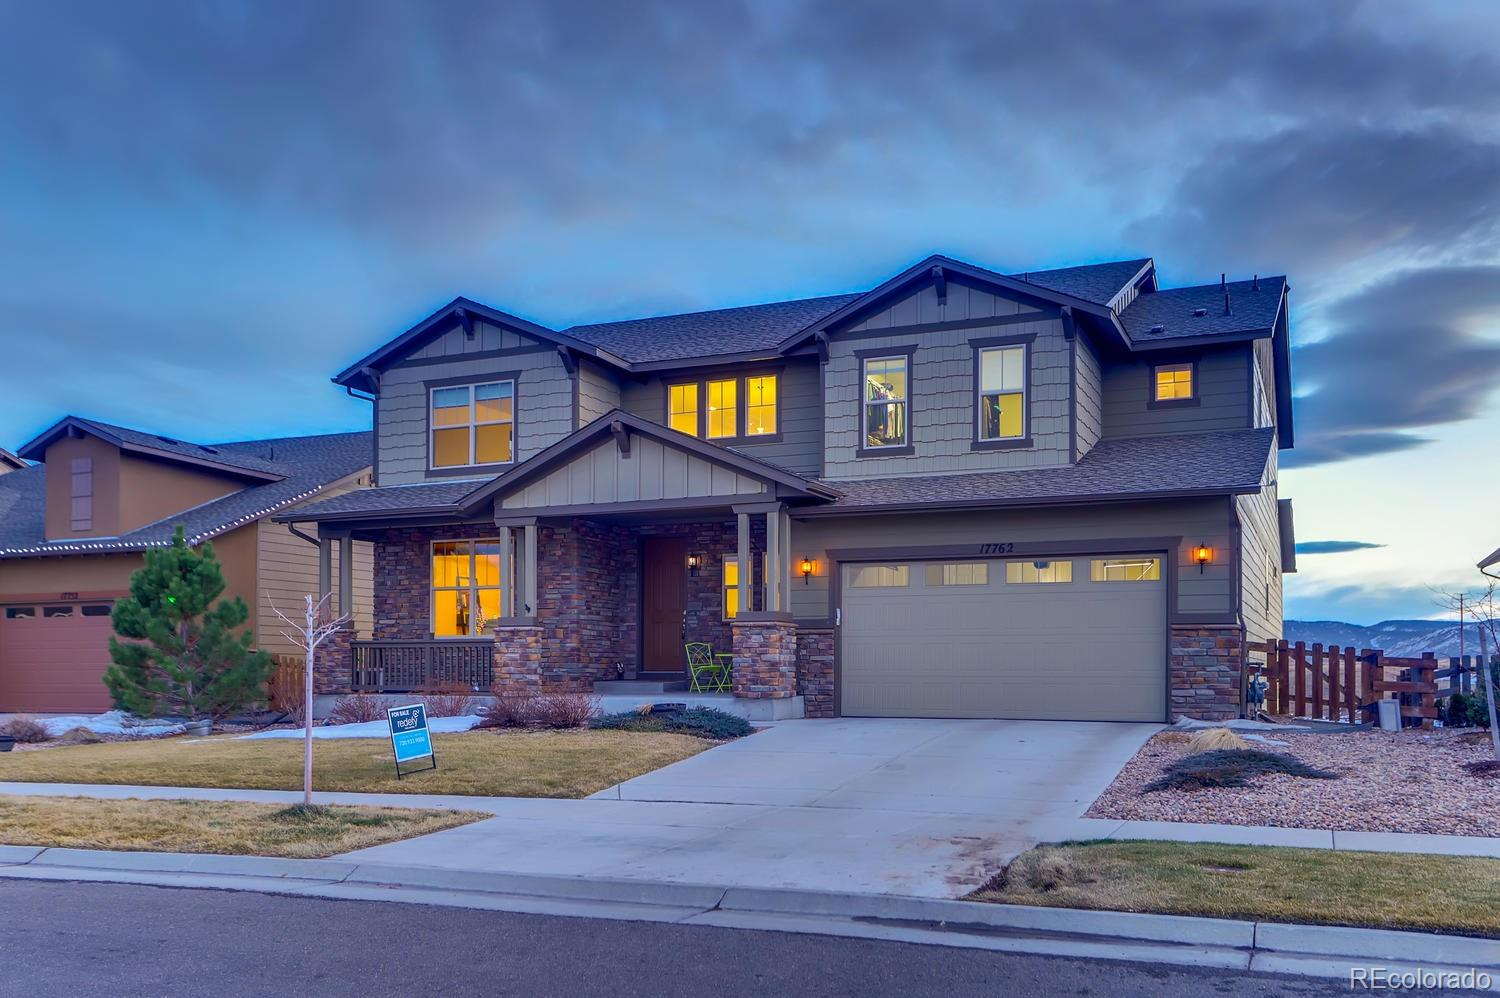 MLS# 4767152 - 4 - 17762 W 83rd Place, Arvada, CO 80007